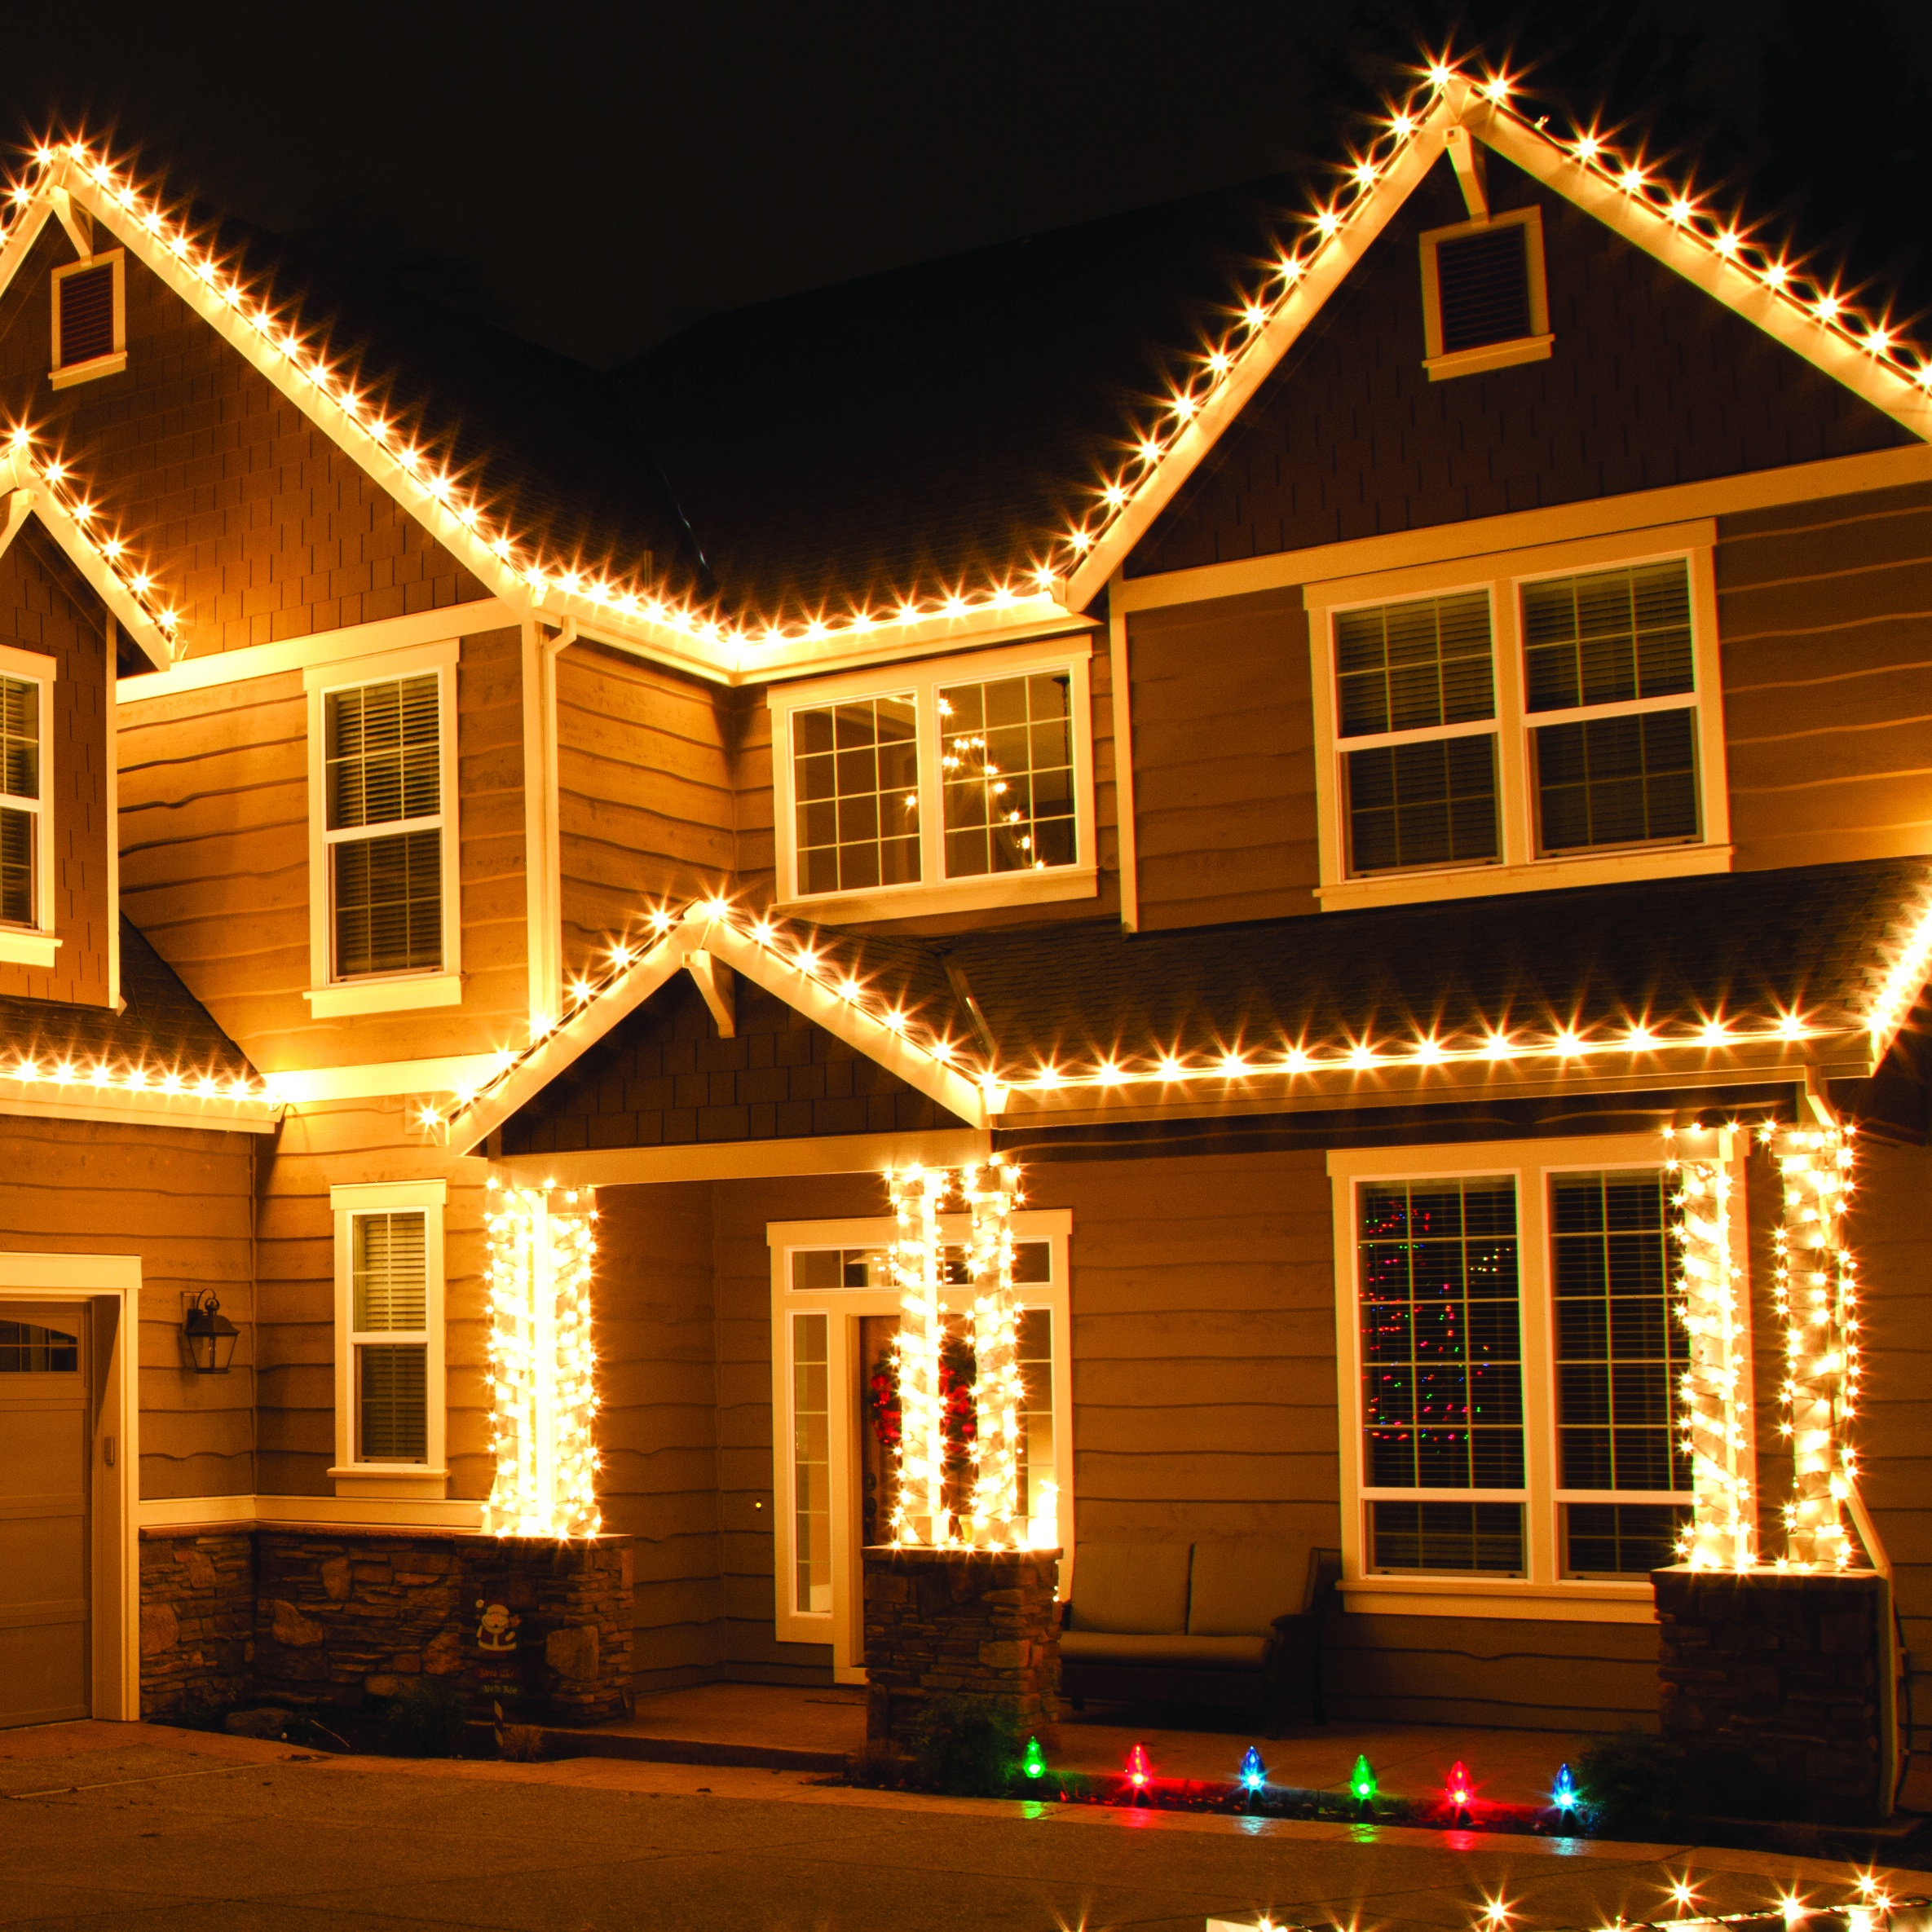 patio christmas lights online discount shop for electronics apparel toys books games computers shoes jewelry watches baby products sports outdoors office products bed bath furniture tools hardware automotive parts